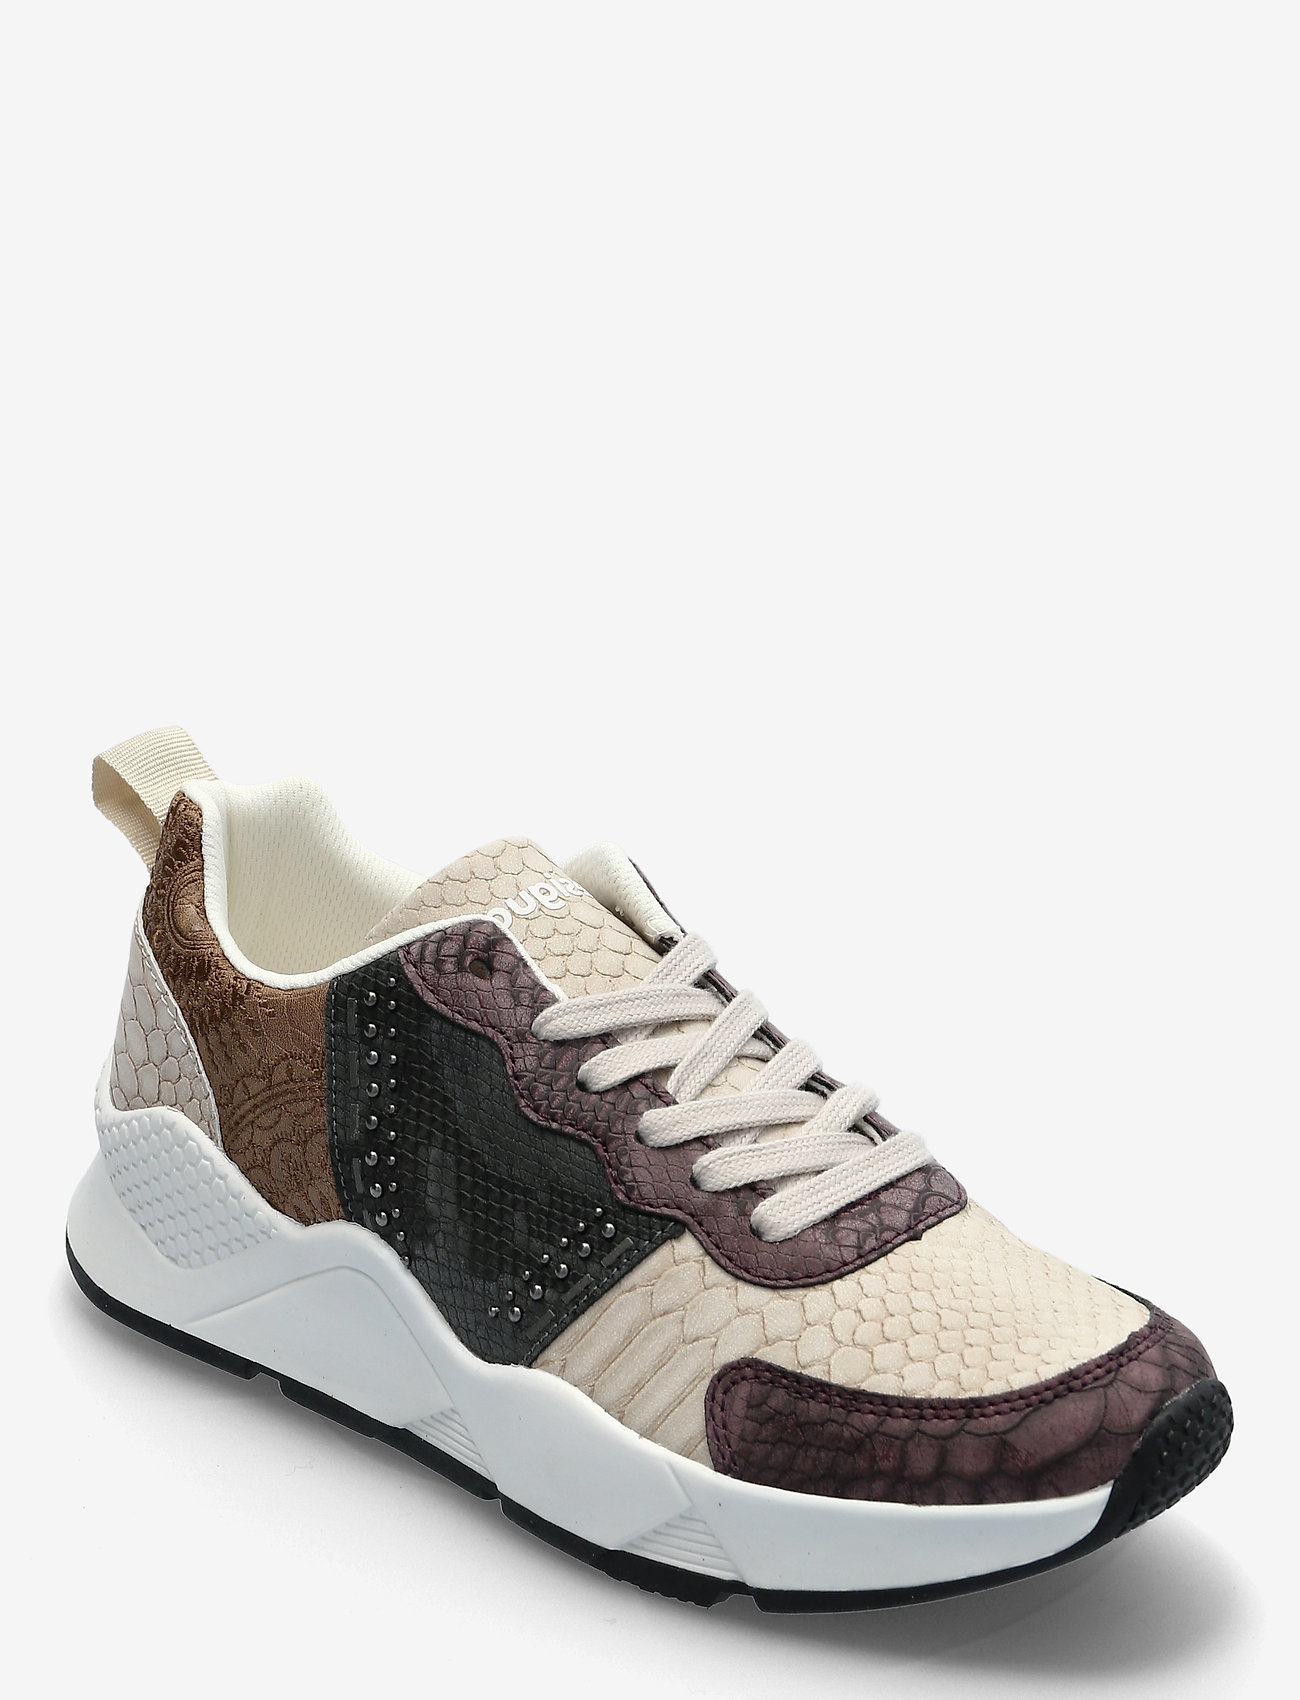 Desigual Shoes - SHOES HYDRA PACH - låga sneakers - brown stone - 0